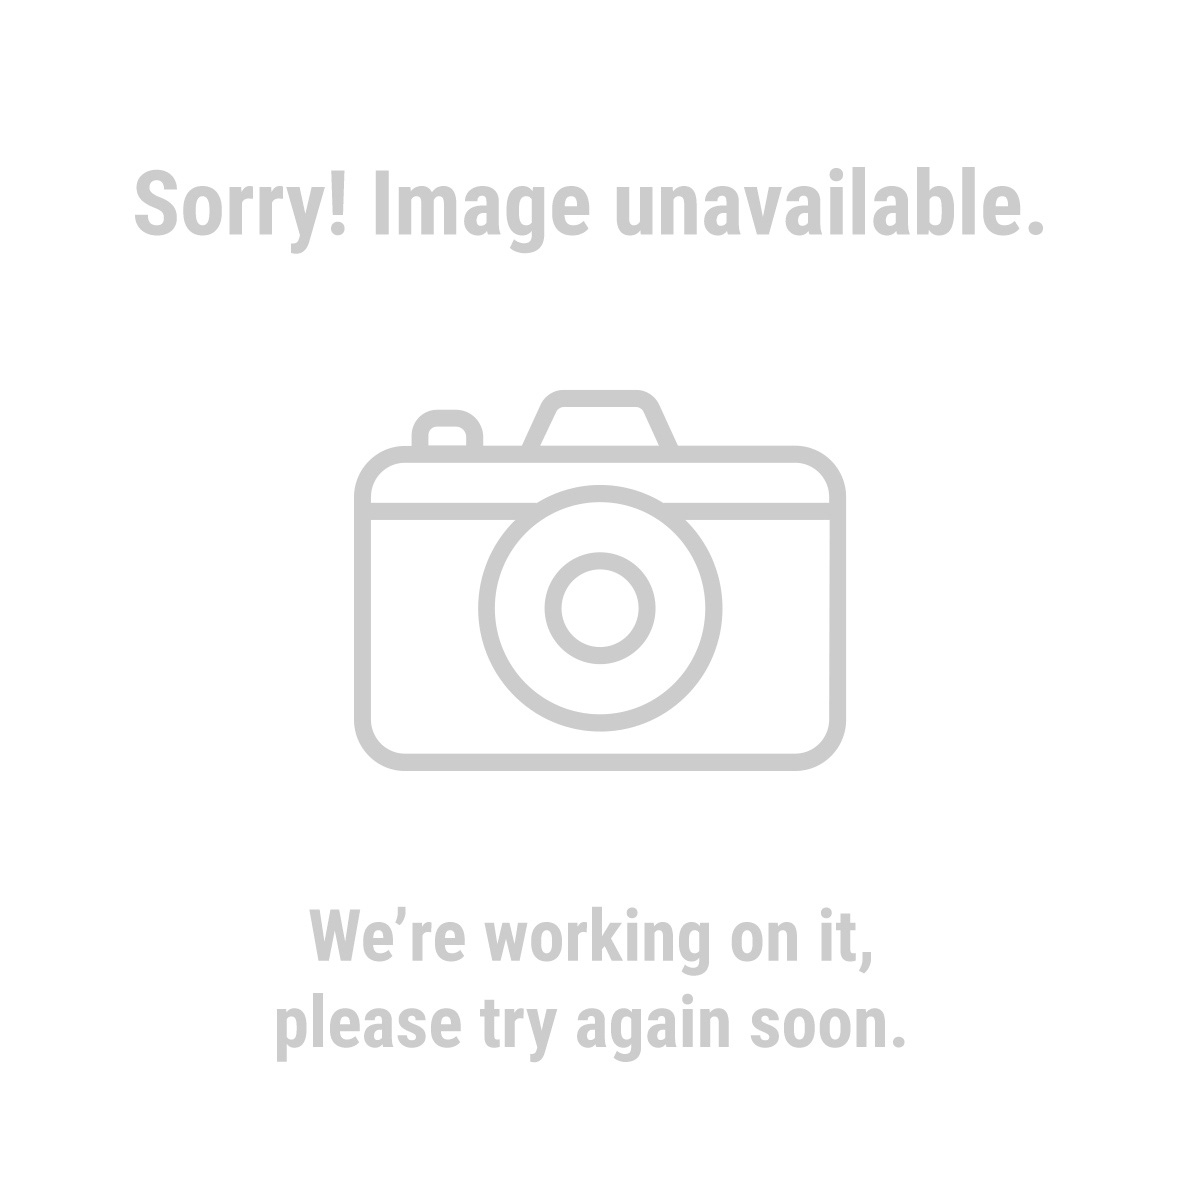 Harbor Freight Power Inverter